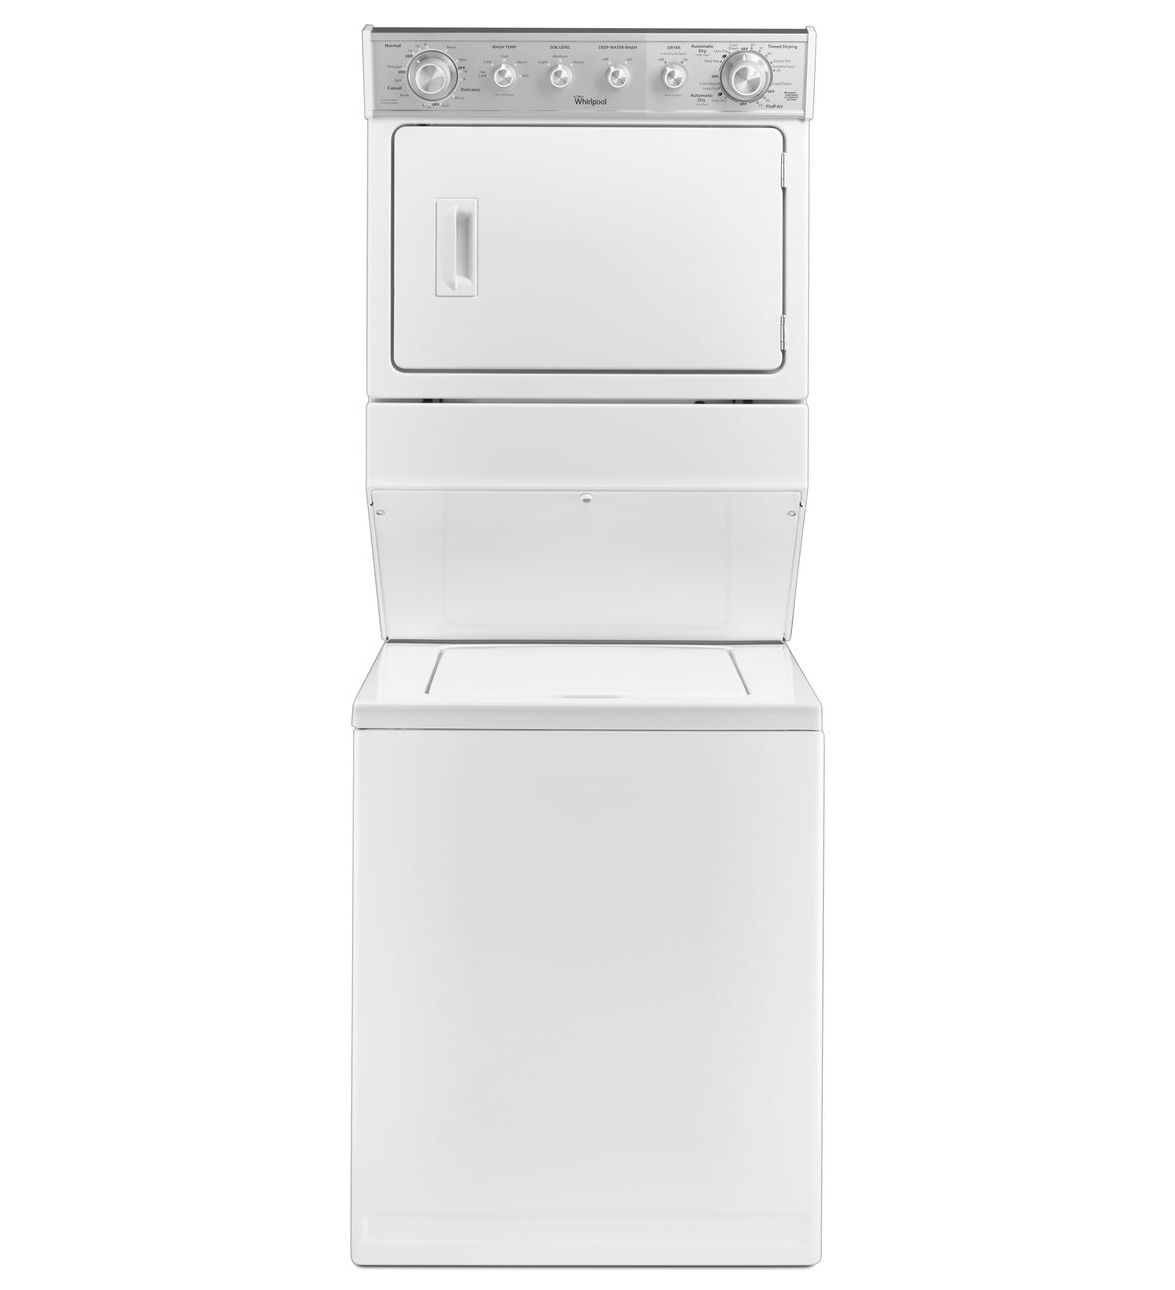 Whirlpool Appliances Canada Whirlpool Thin Twin Washer Dryer Combination White